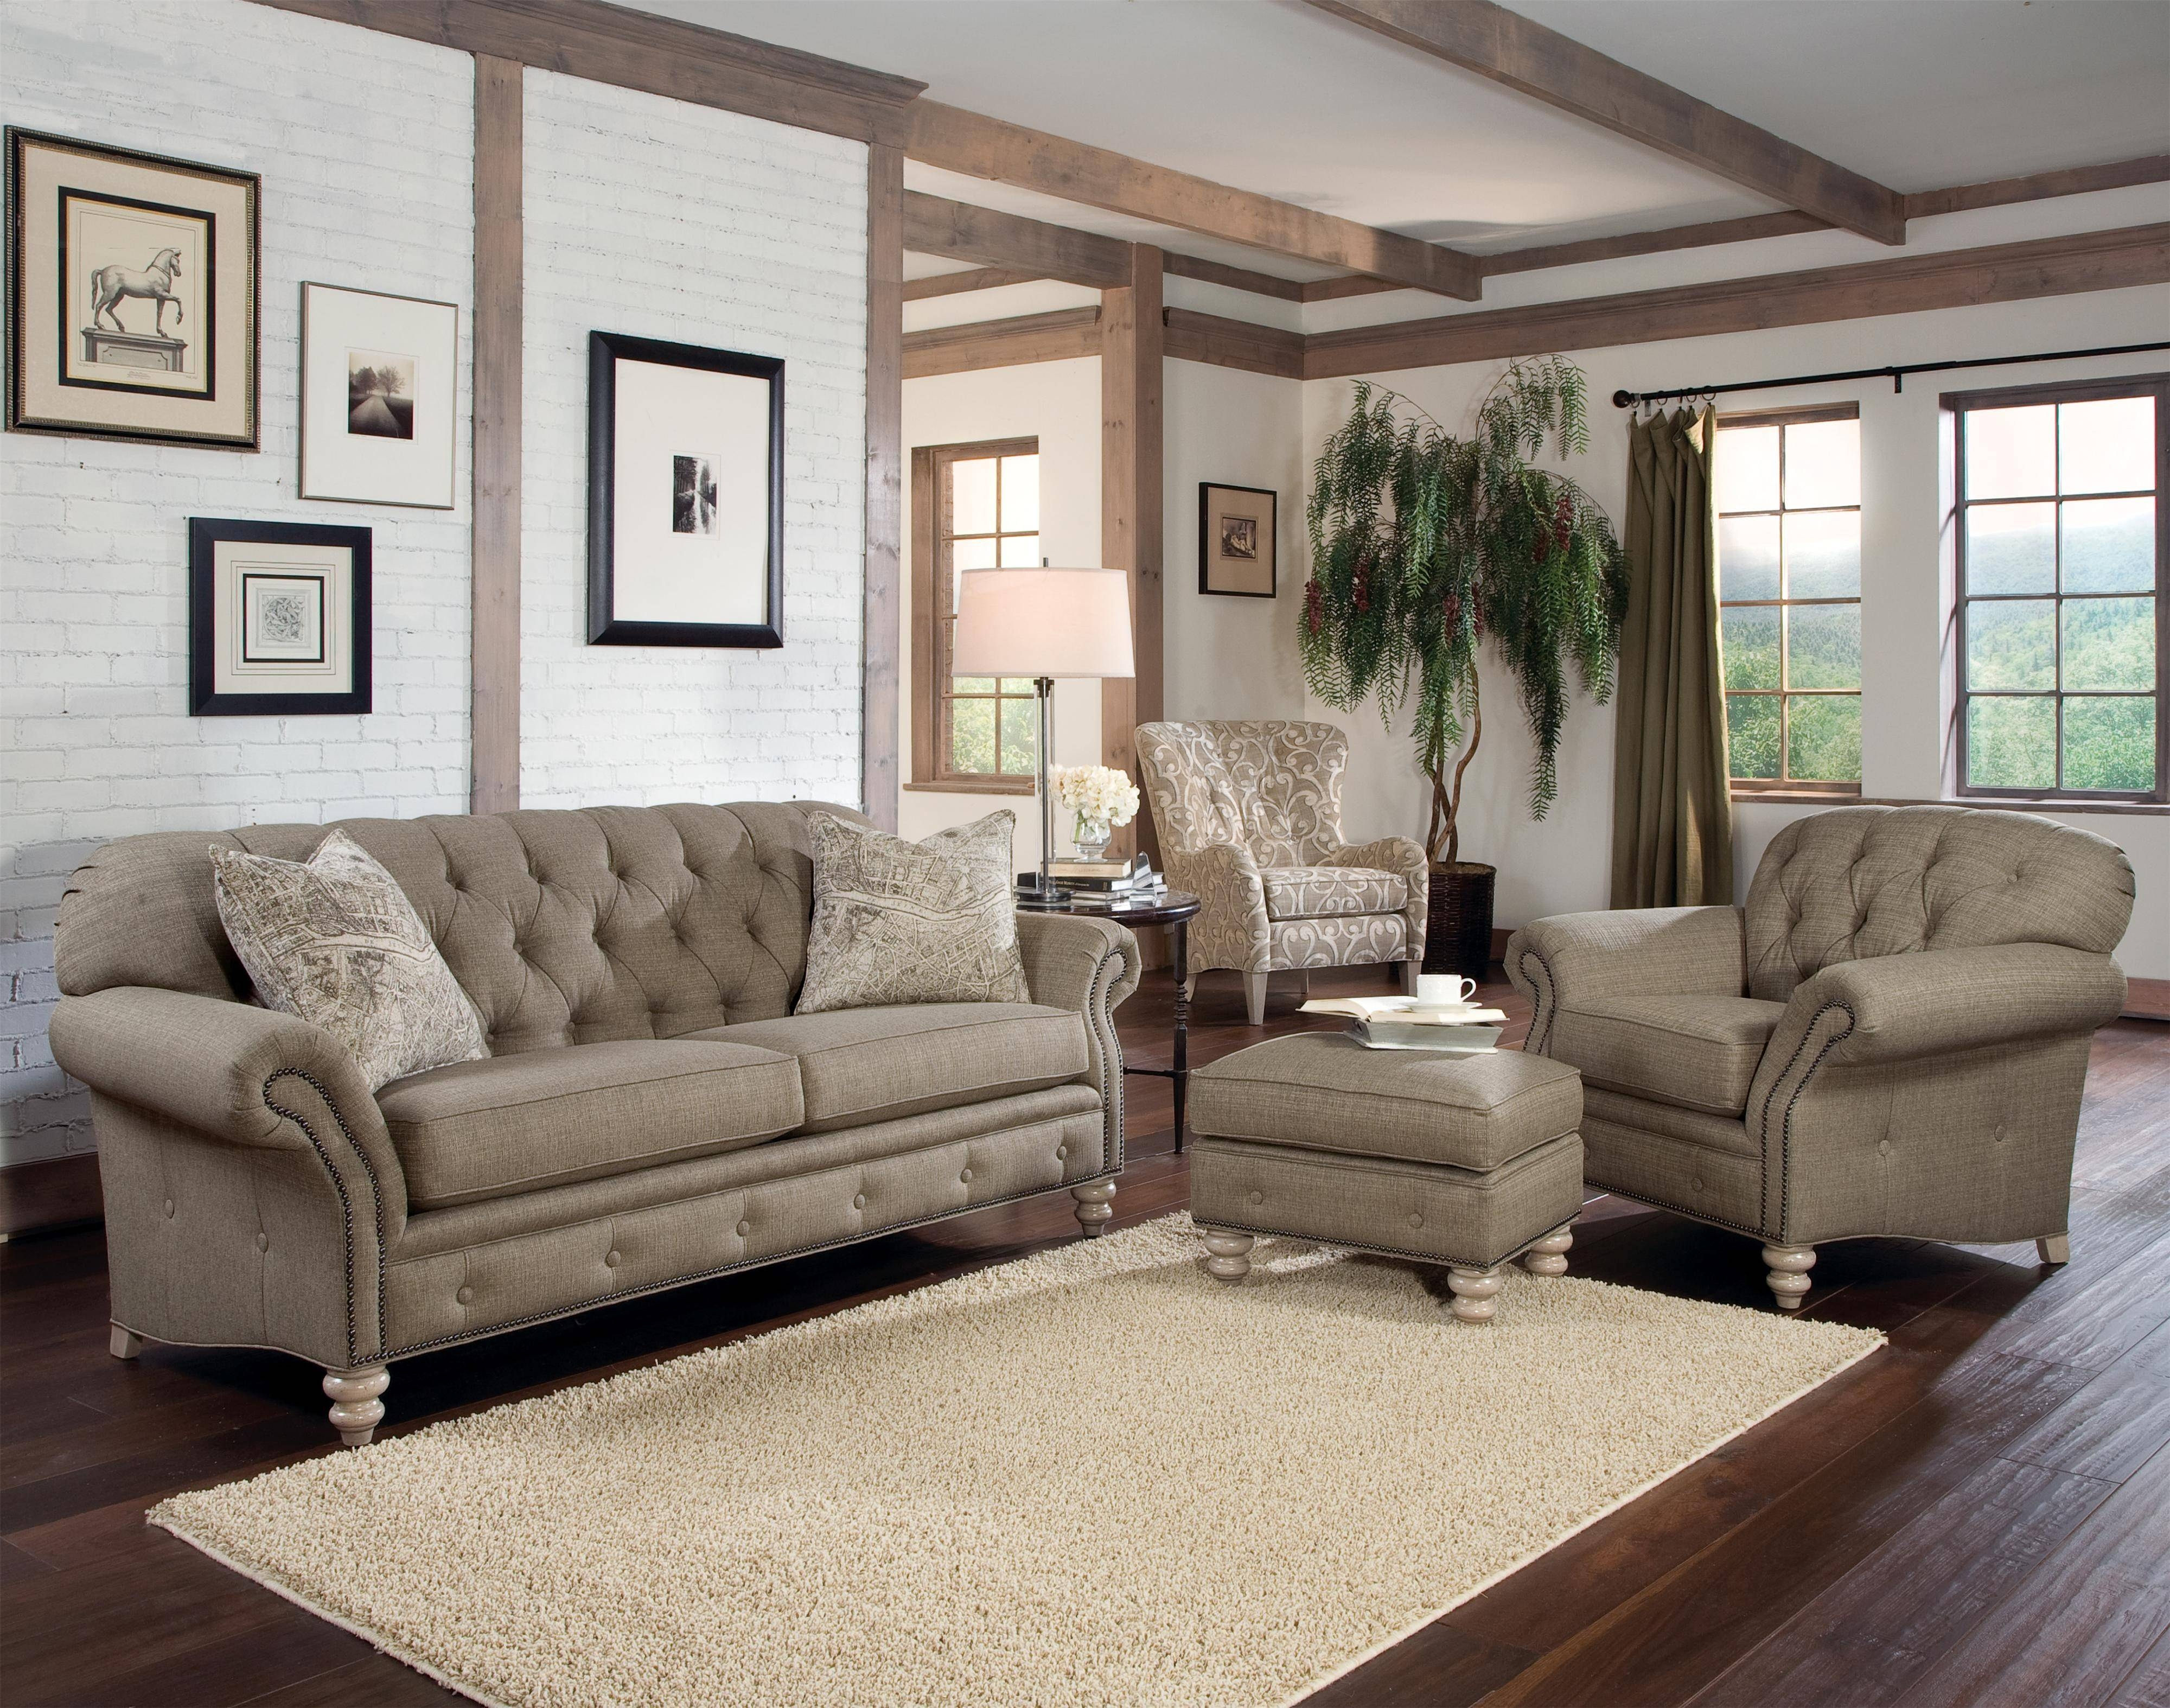 New Tufted Sofa Set Gallery | Gallery Image And Wallpaper throughout Brown Tufted Sofas (Image 12 of 15)